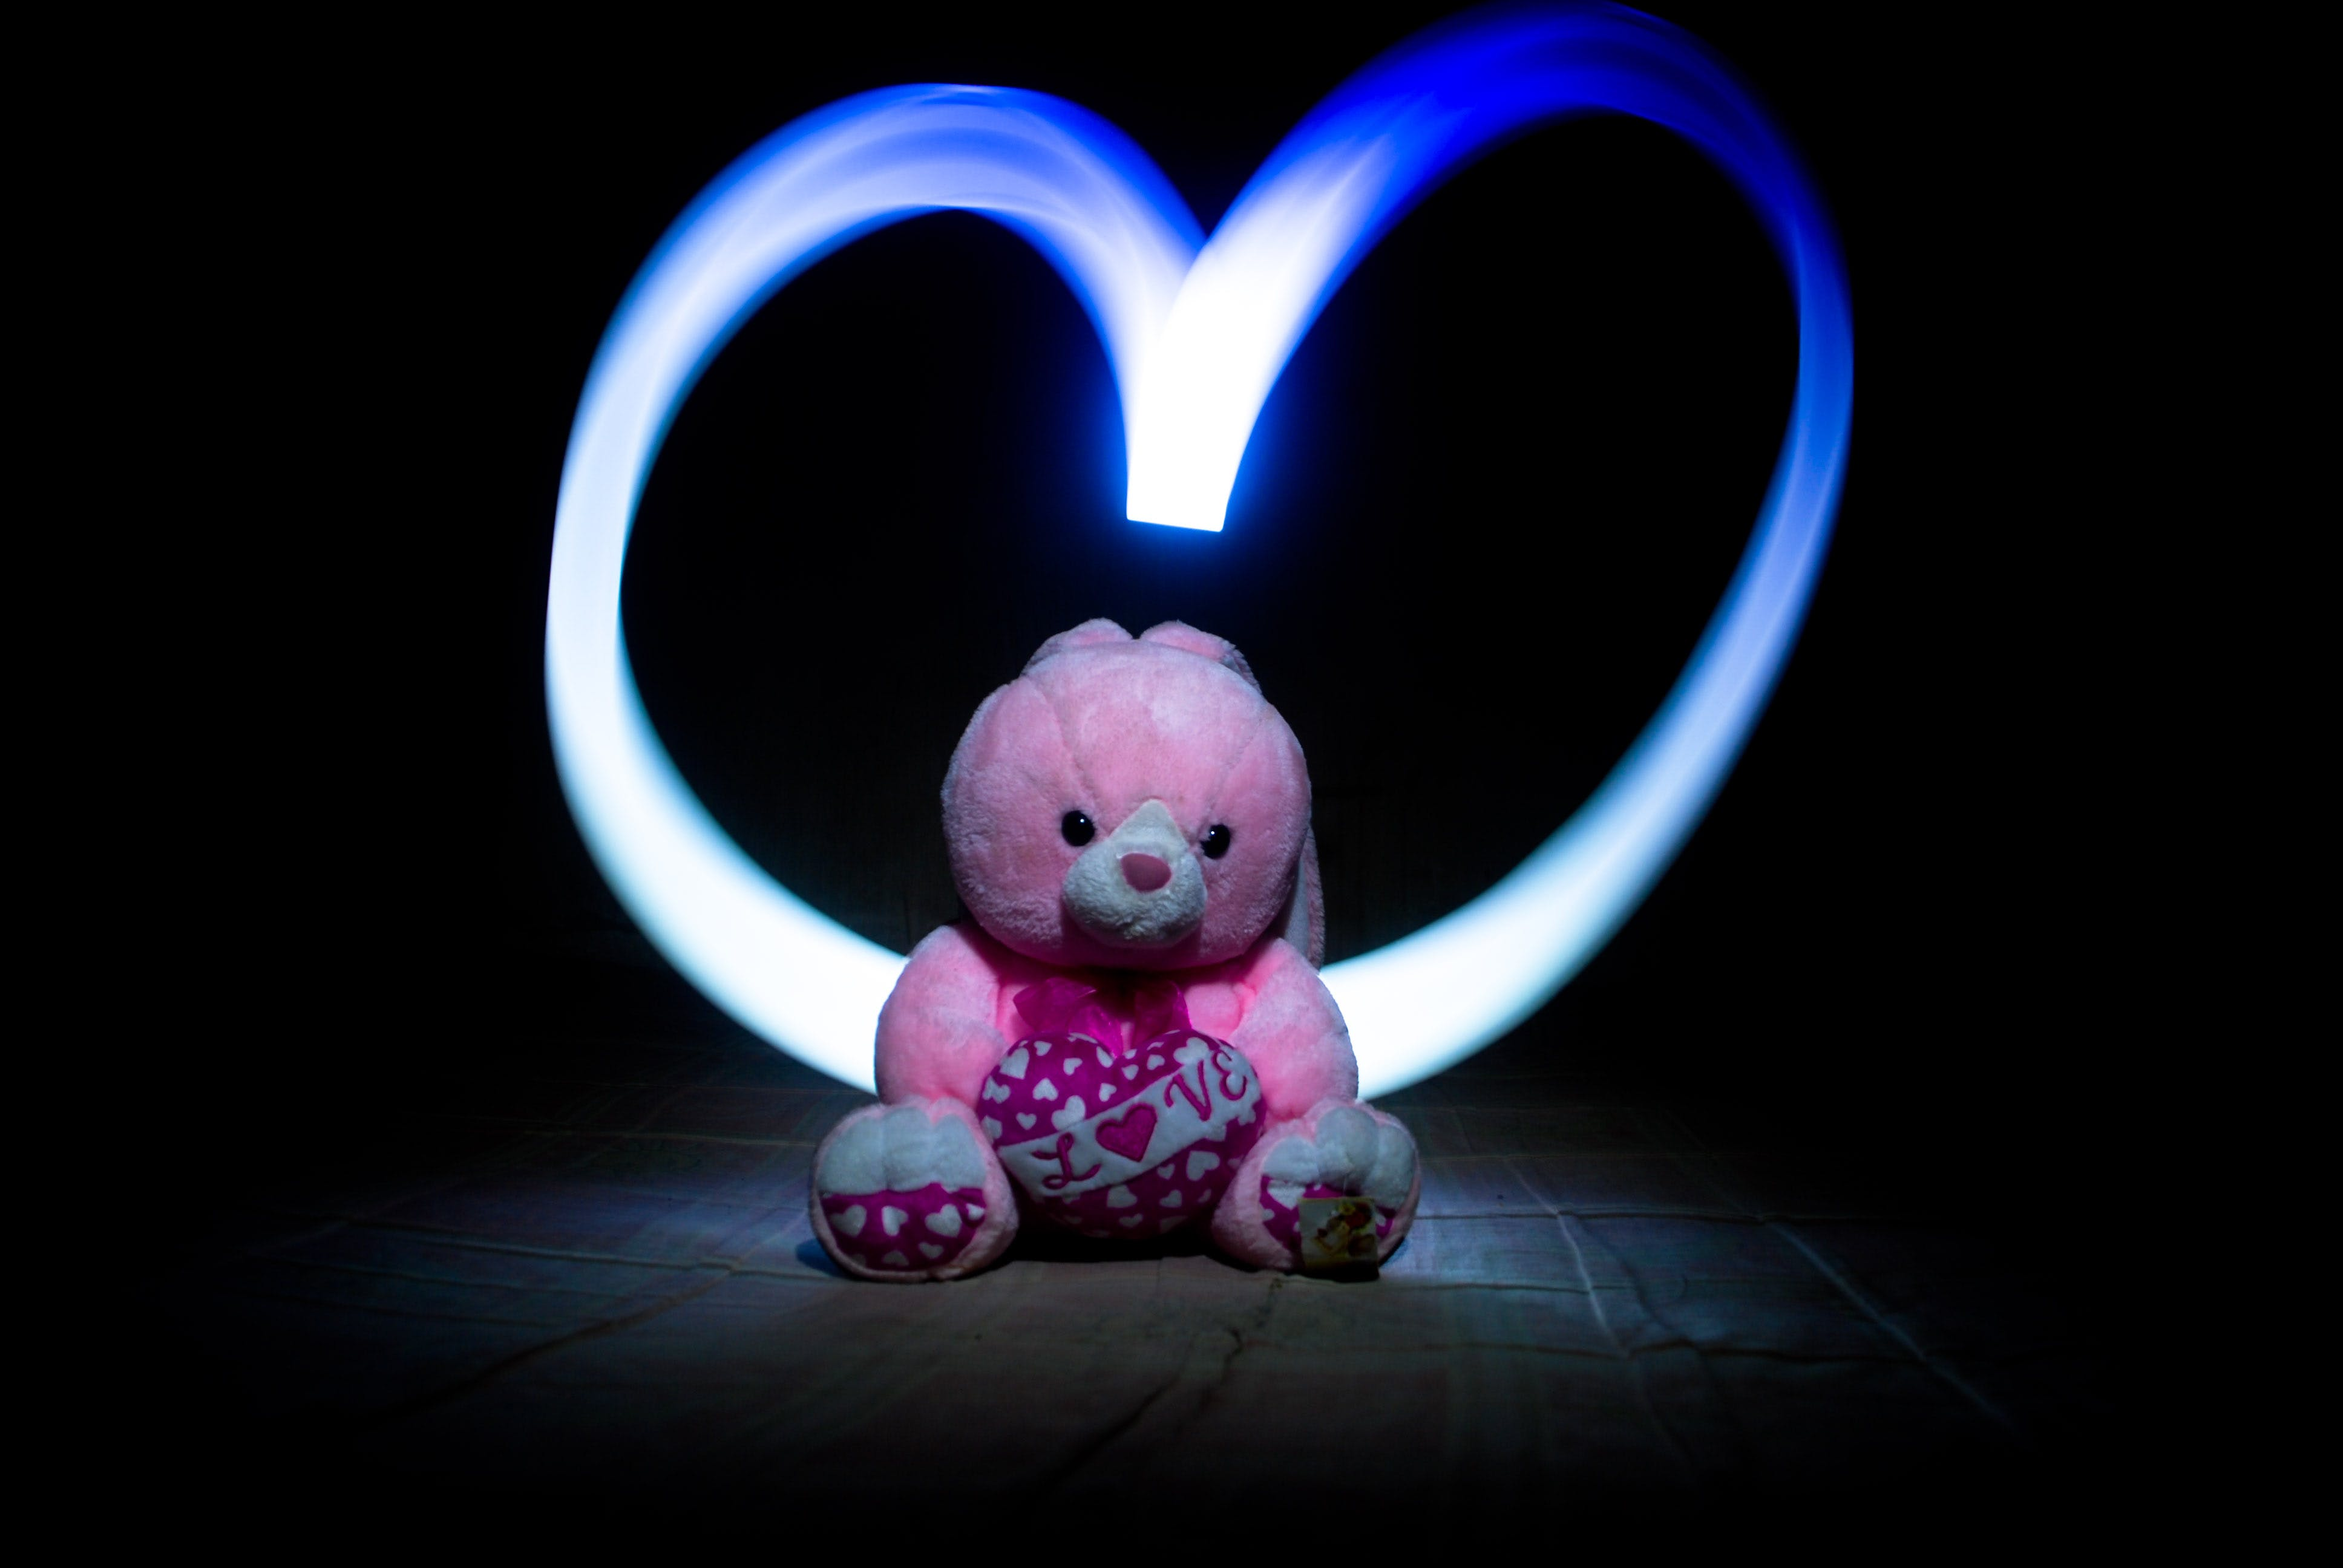 Pink Bear Plush Toy With Heart Draw-lighting Photography Effect